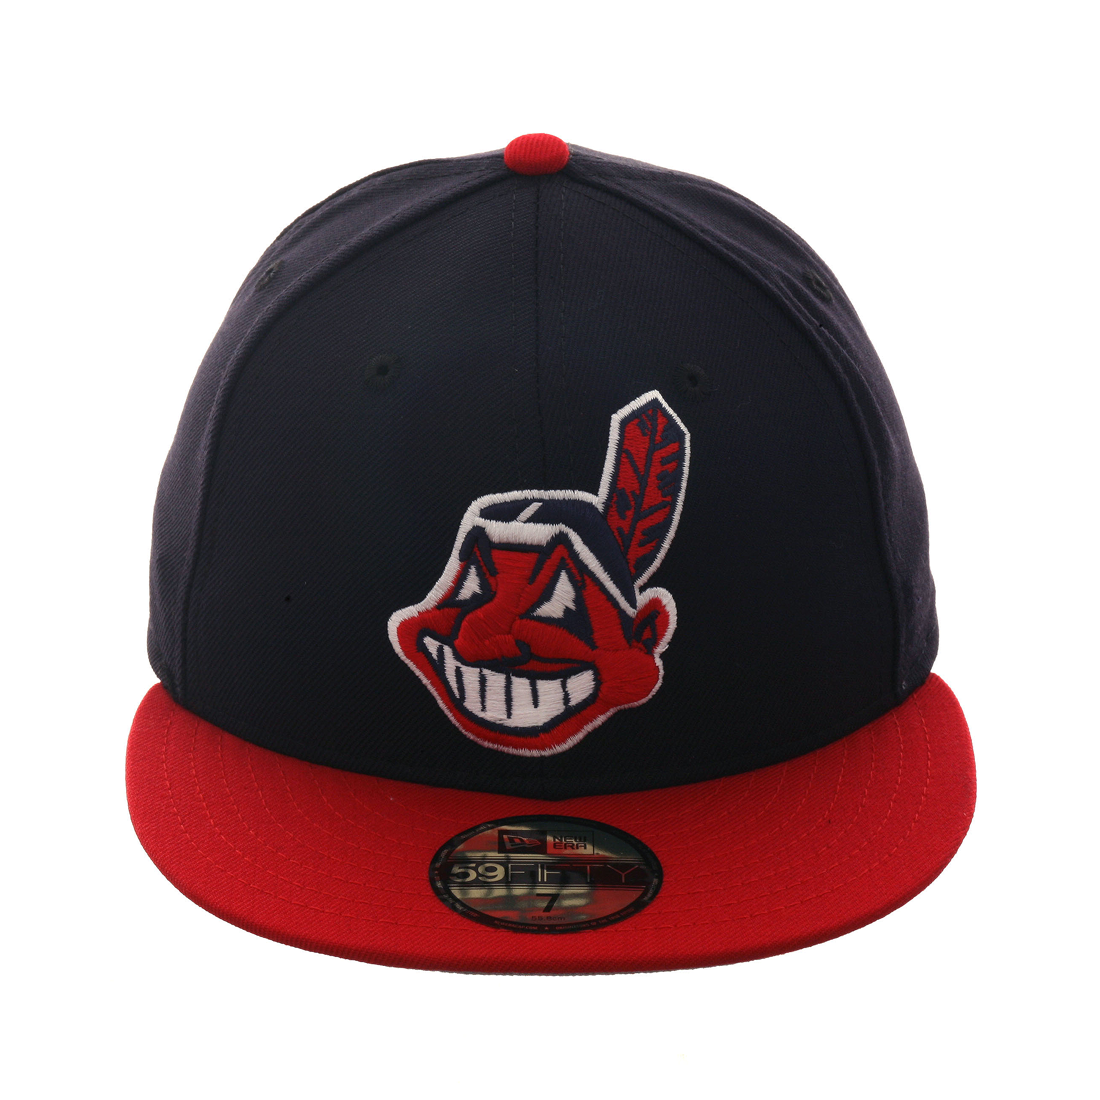 Exclusive New Era 59Fifty Cleveland Indians 1995 w  Gray Undervisor Hat 84e15b5d600f